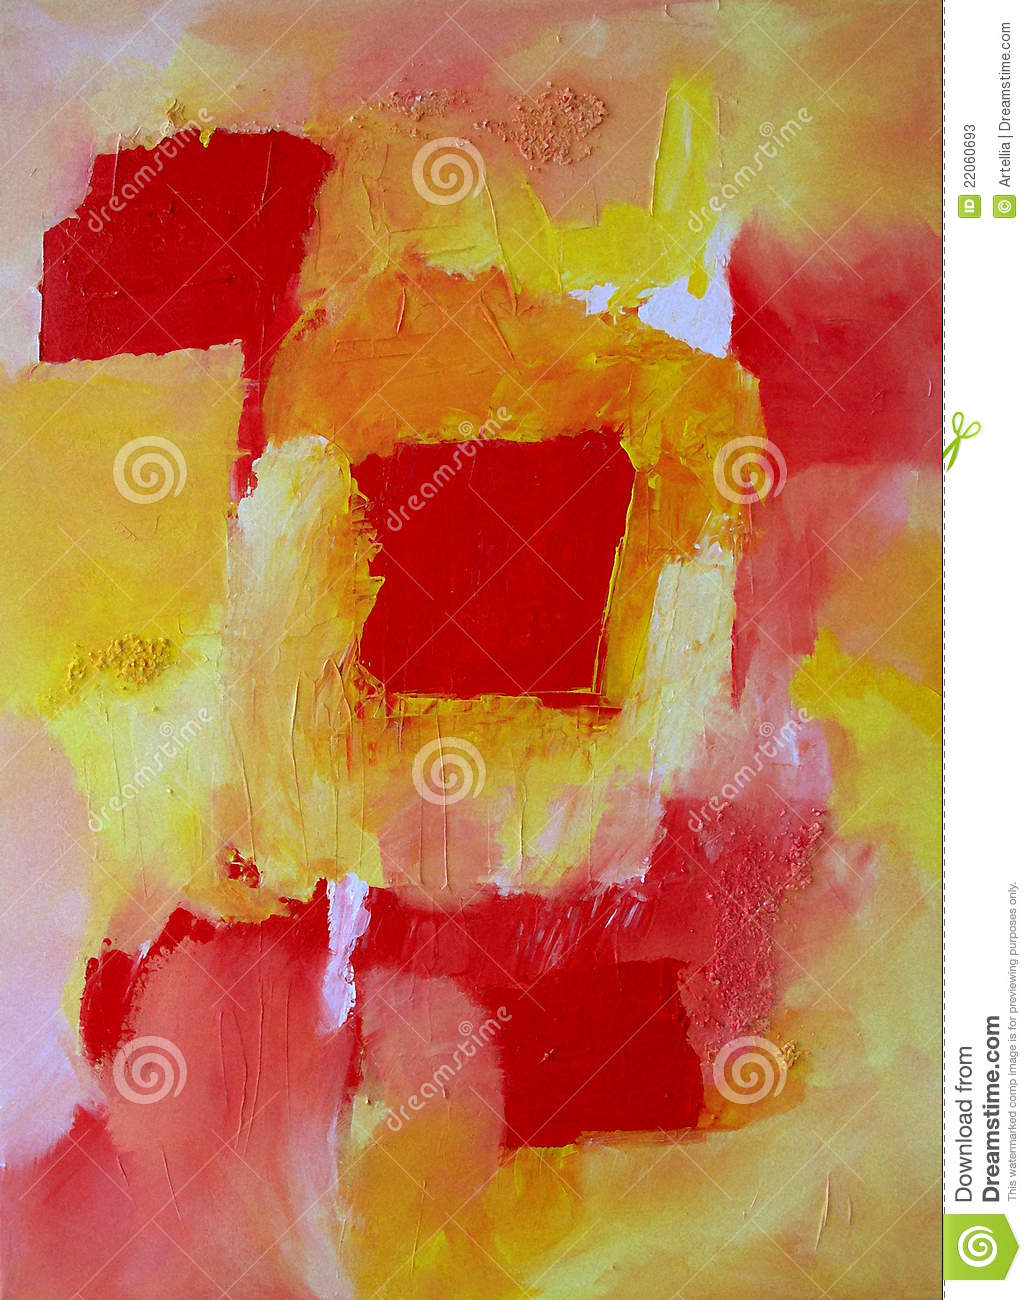 Modern abstract art expressive painting style stock for Modern drawing styles